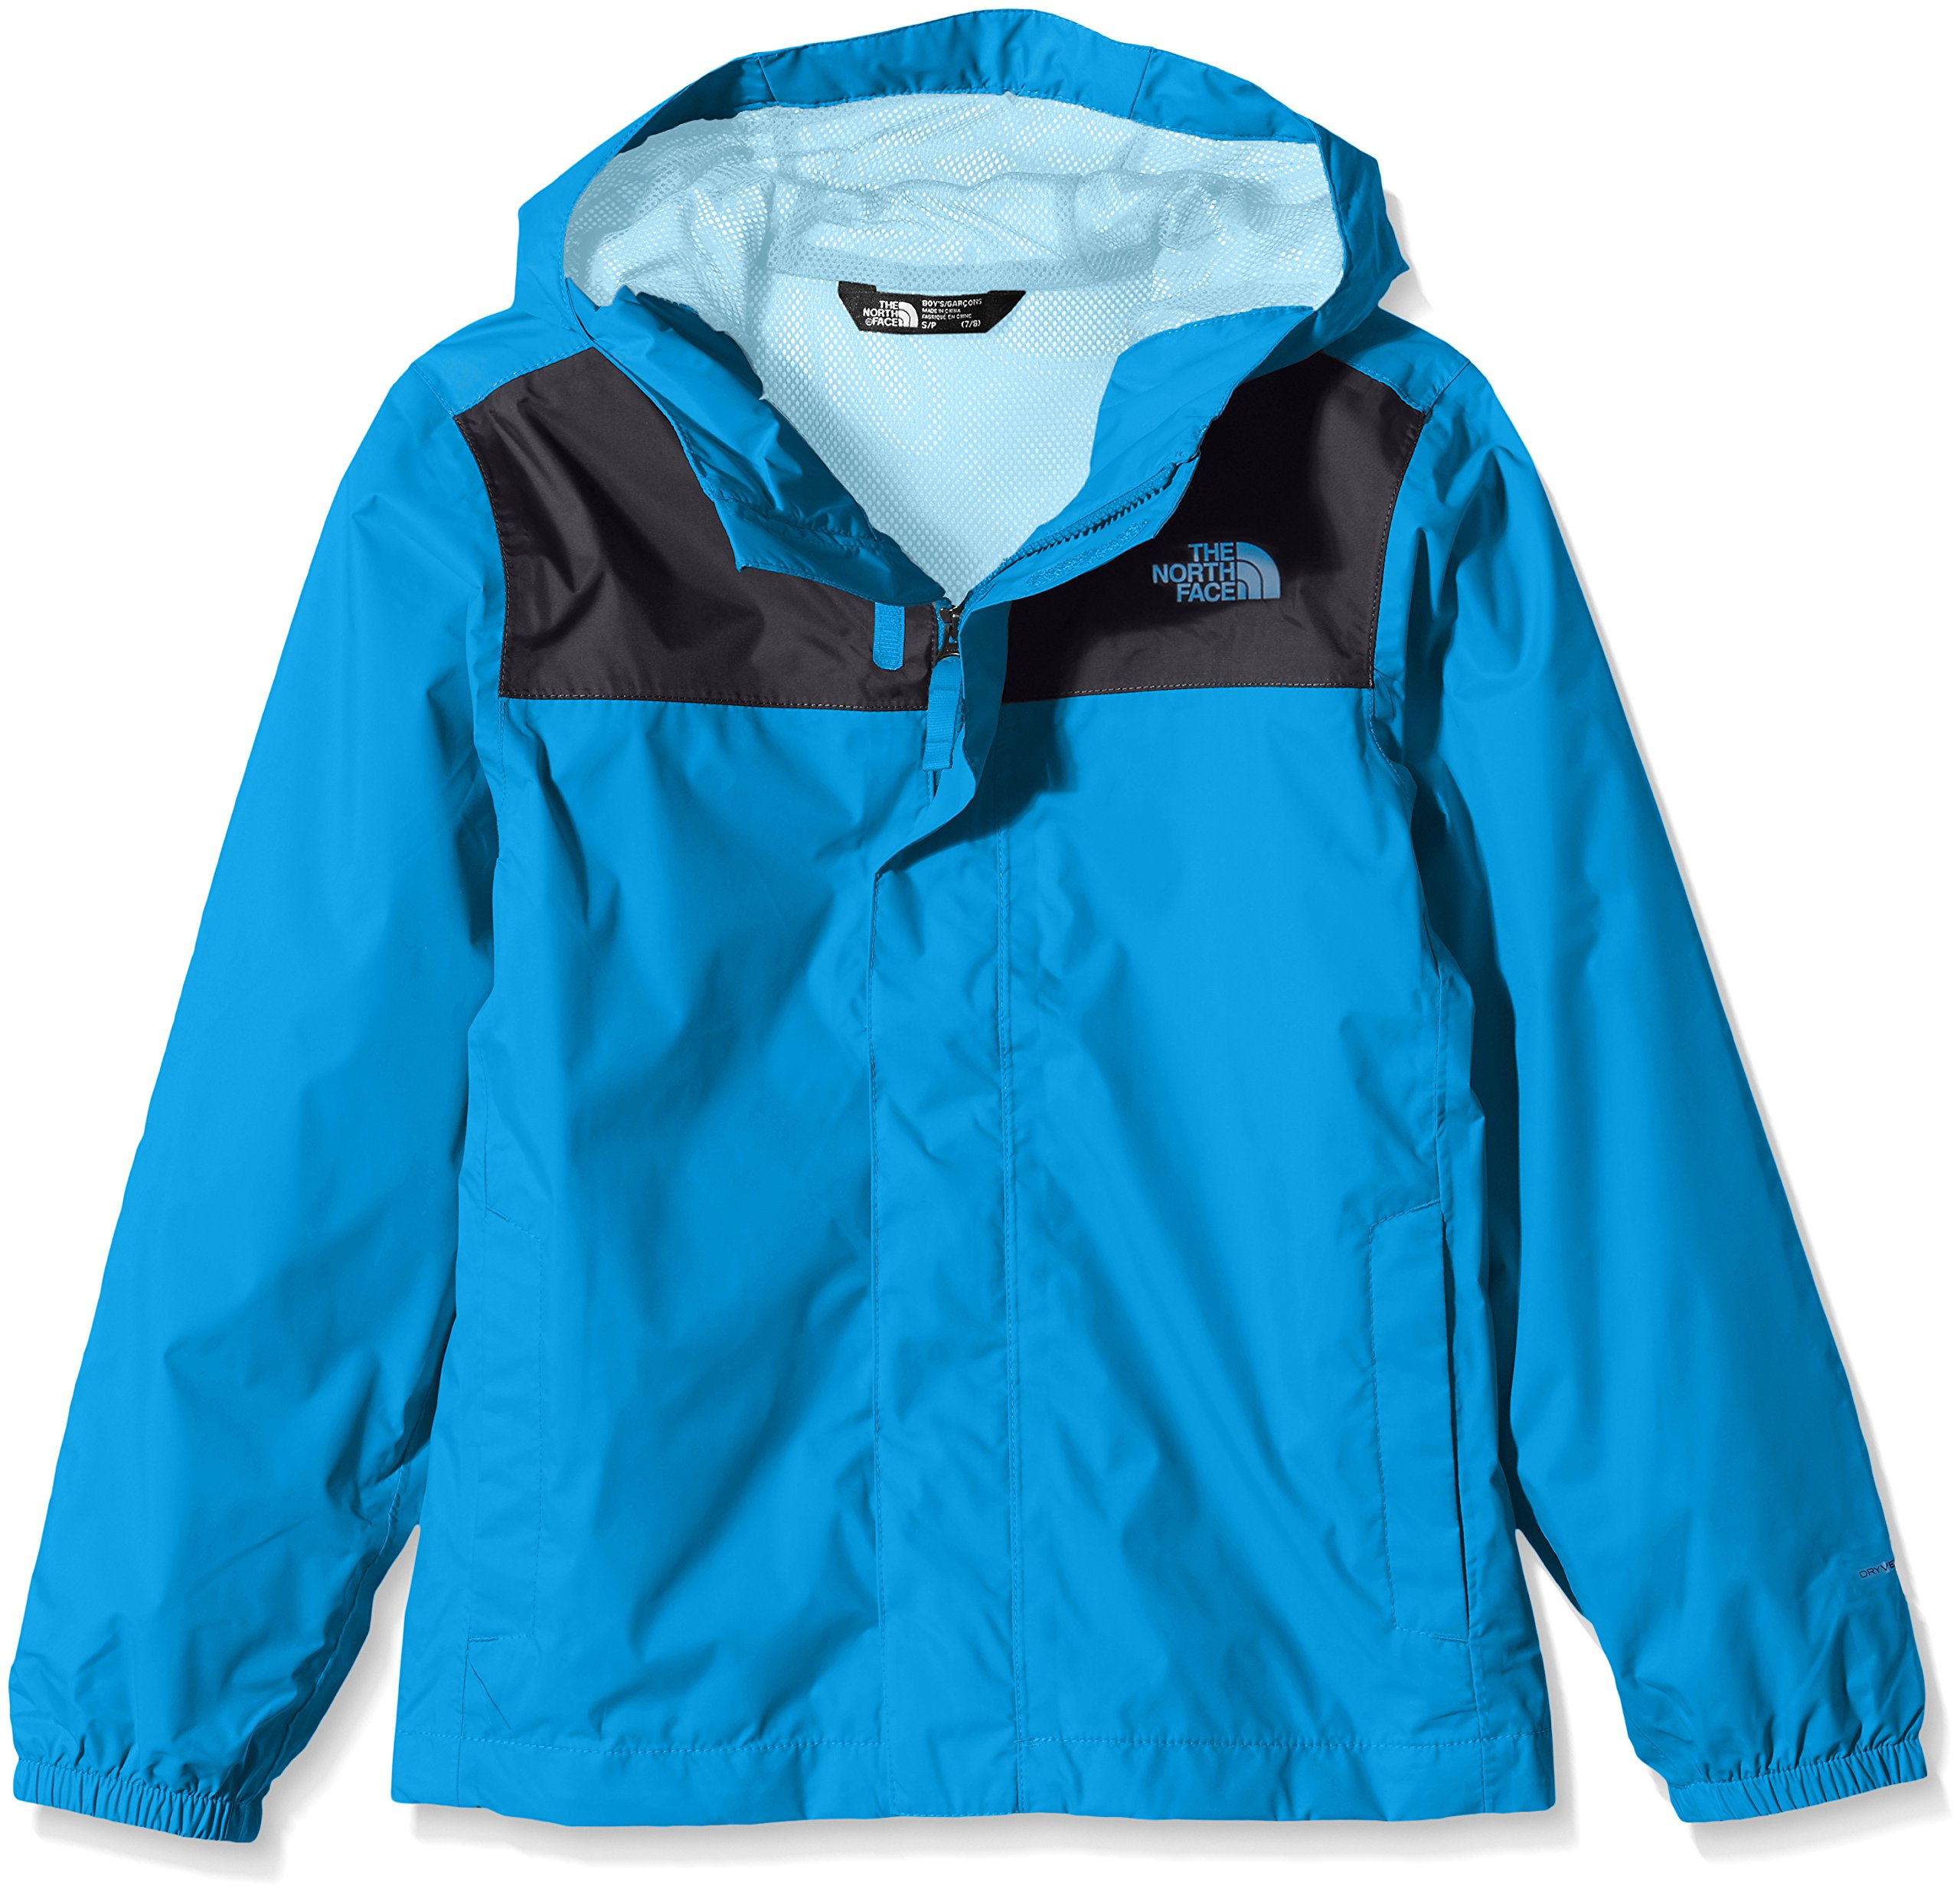 The North Face Big Boys Zipline Rain Jacket - clear lake blue, m/10-12 by The North Face